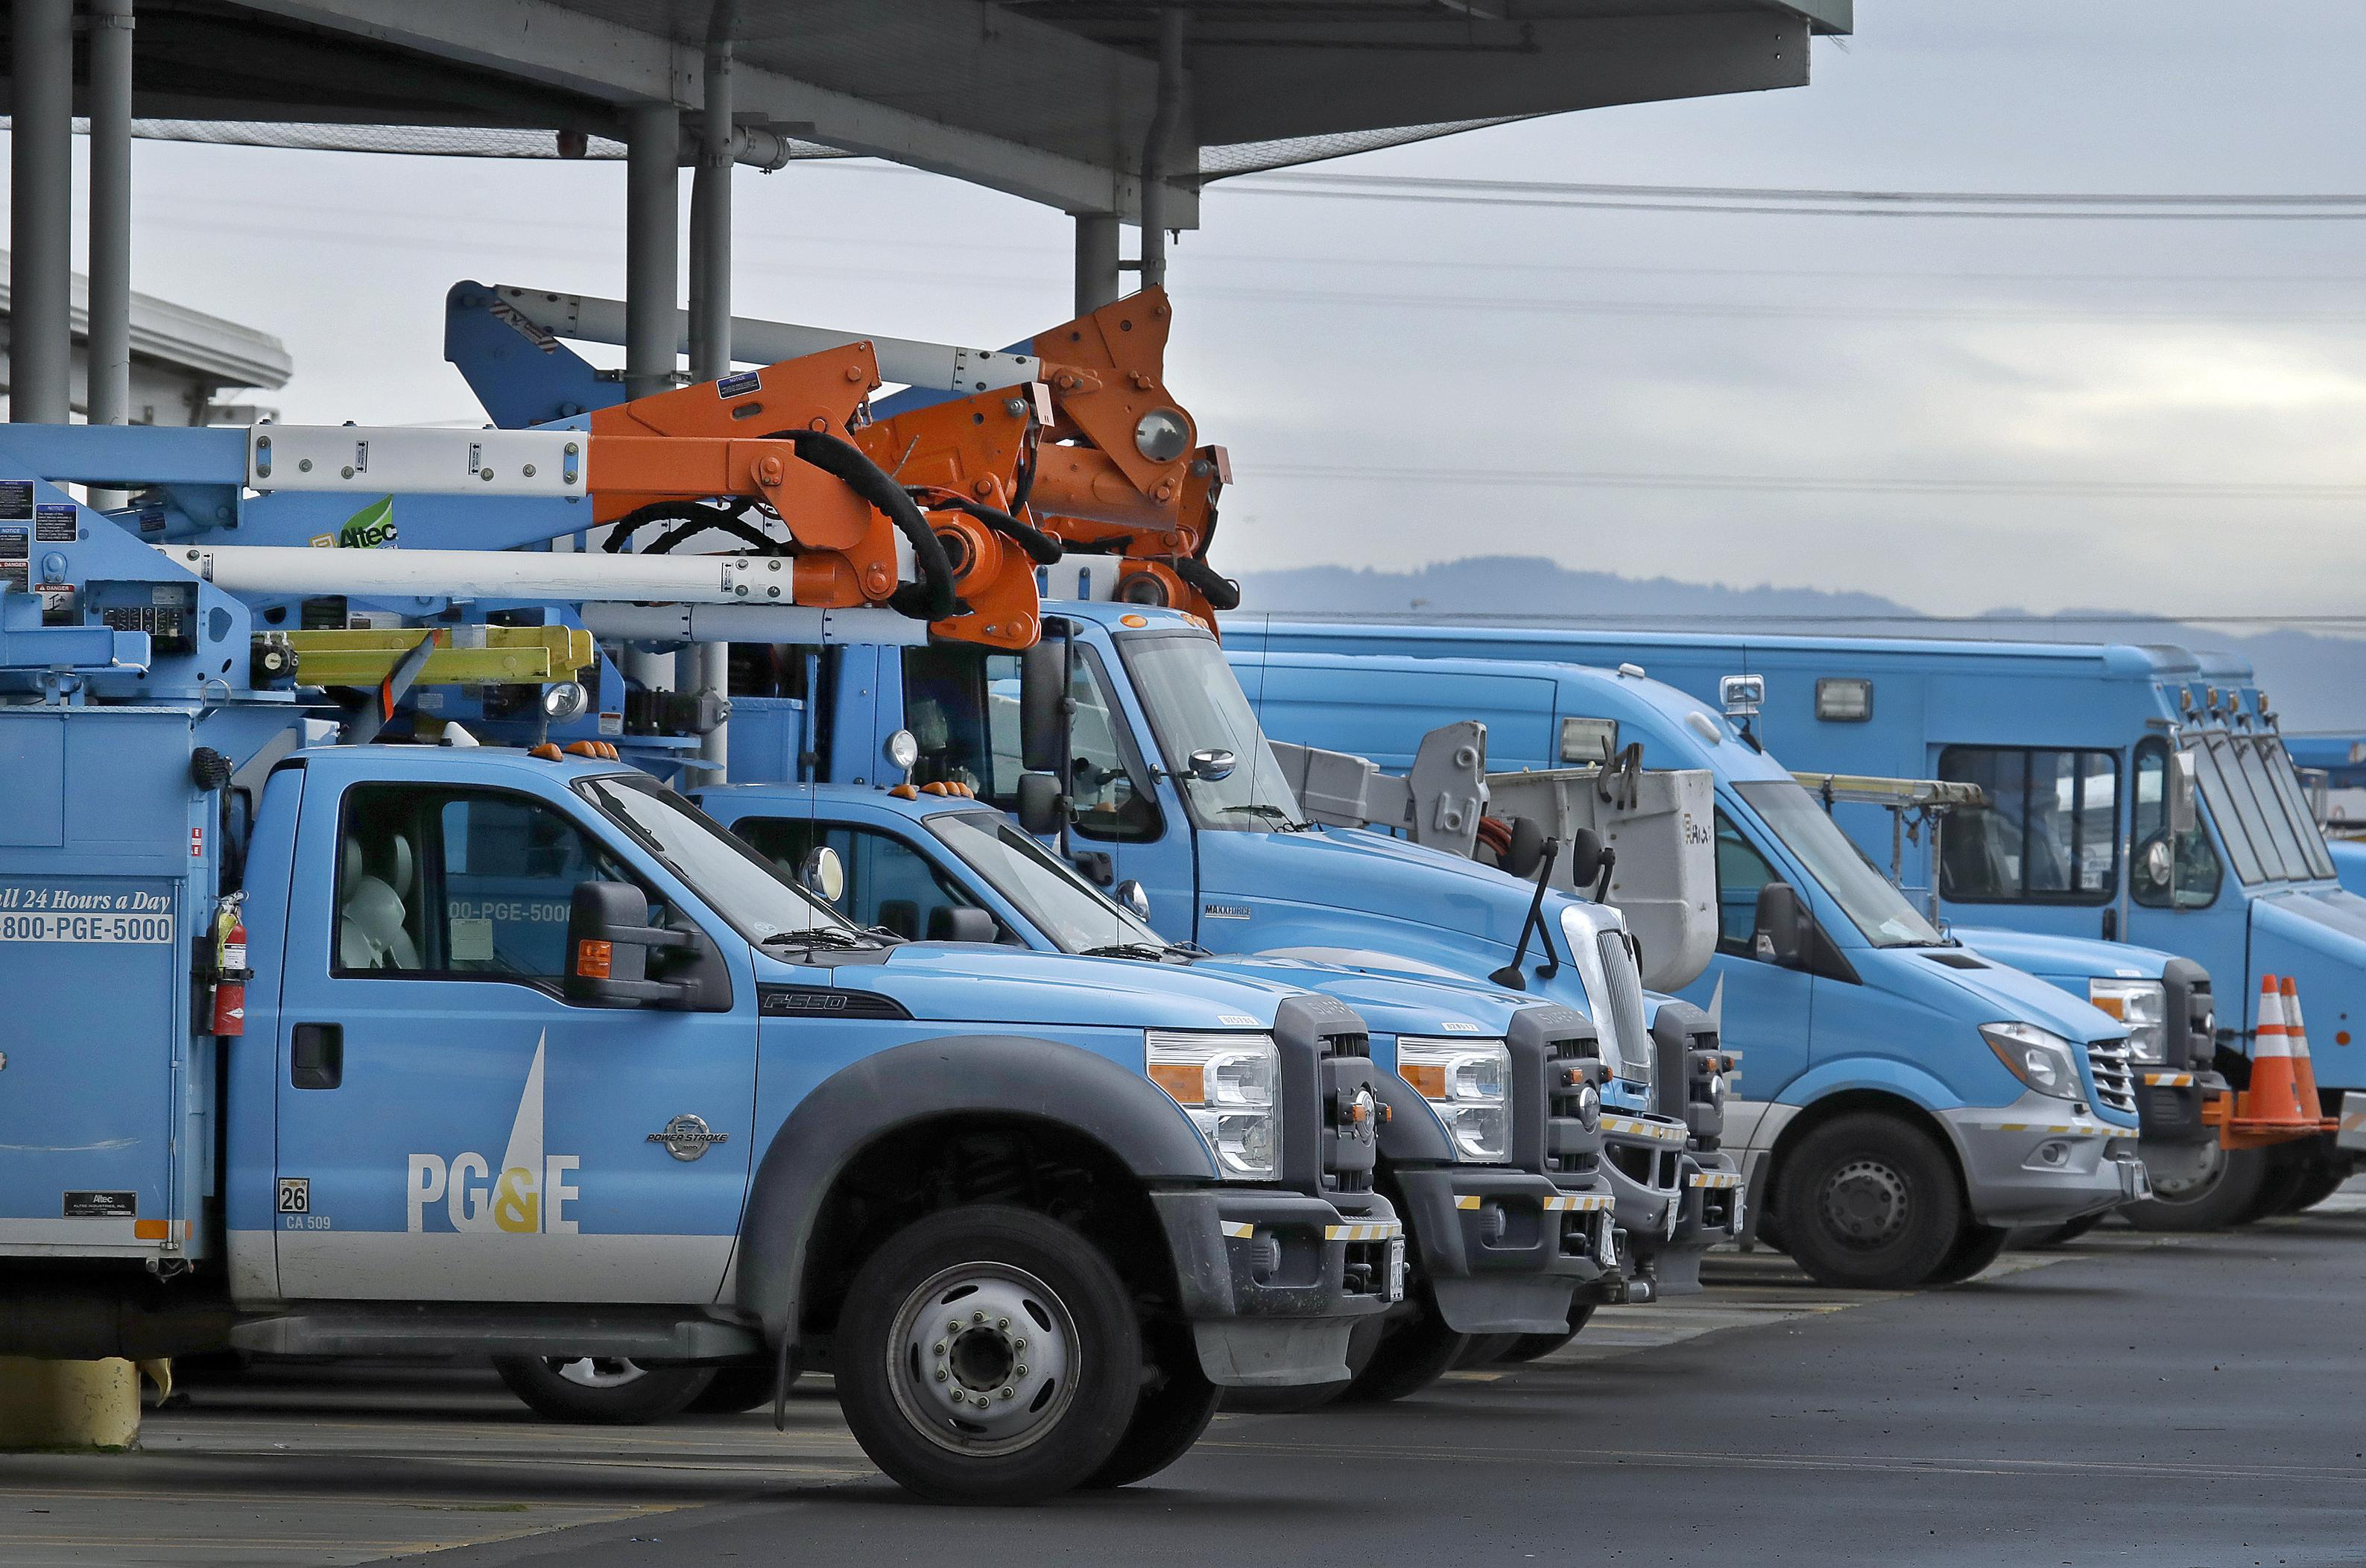 Pacific Gas Electric Vehicles Are Parked Jan 14 2019 At The Pg E